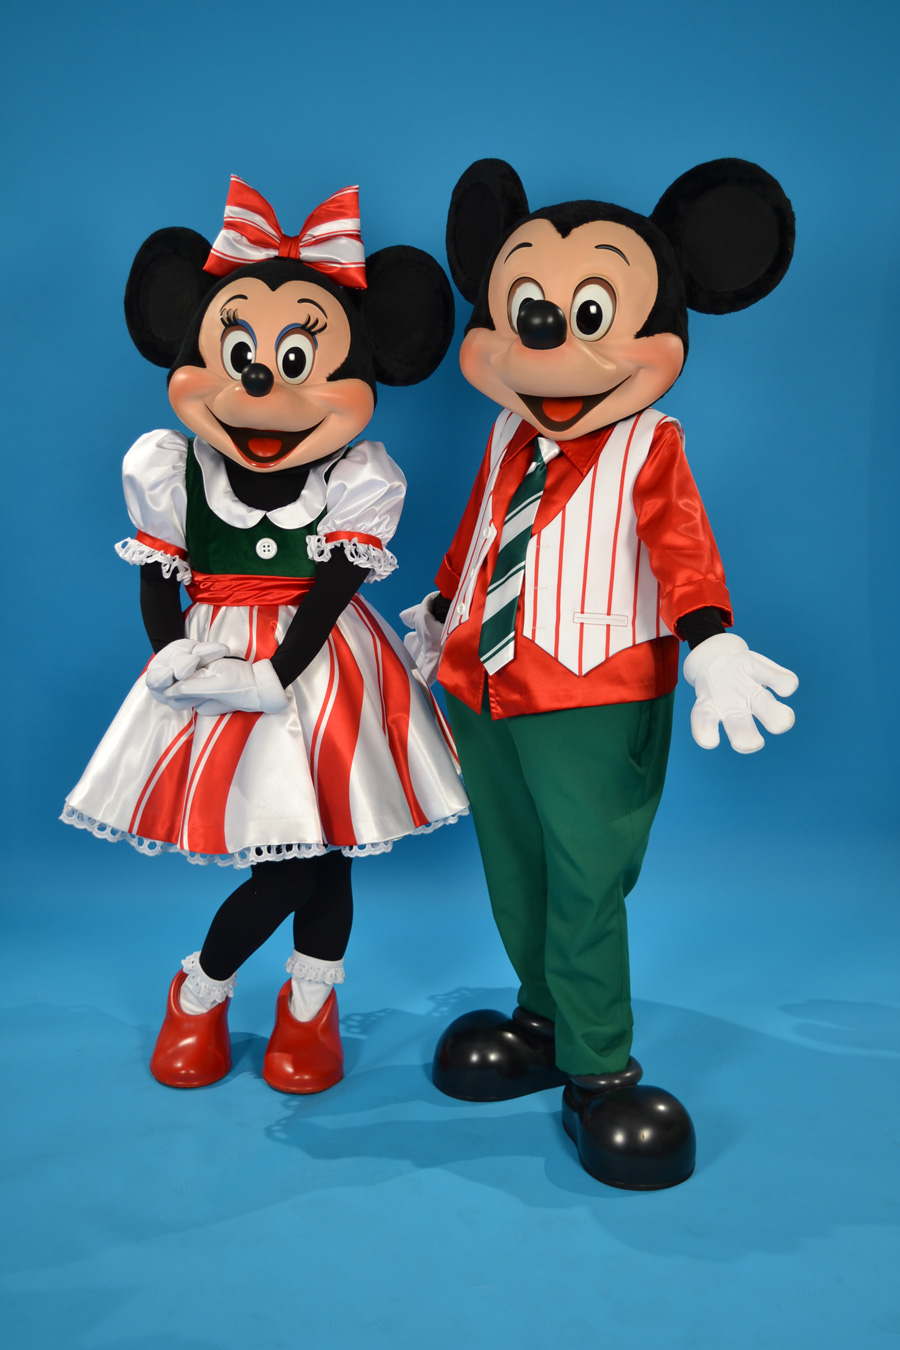 Disney Characters Get Dressed Up For Holiday Fun At Disney